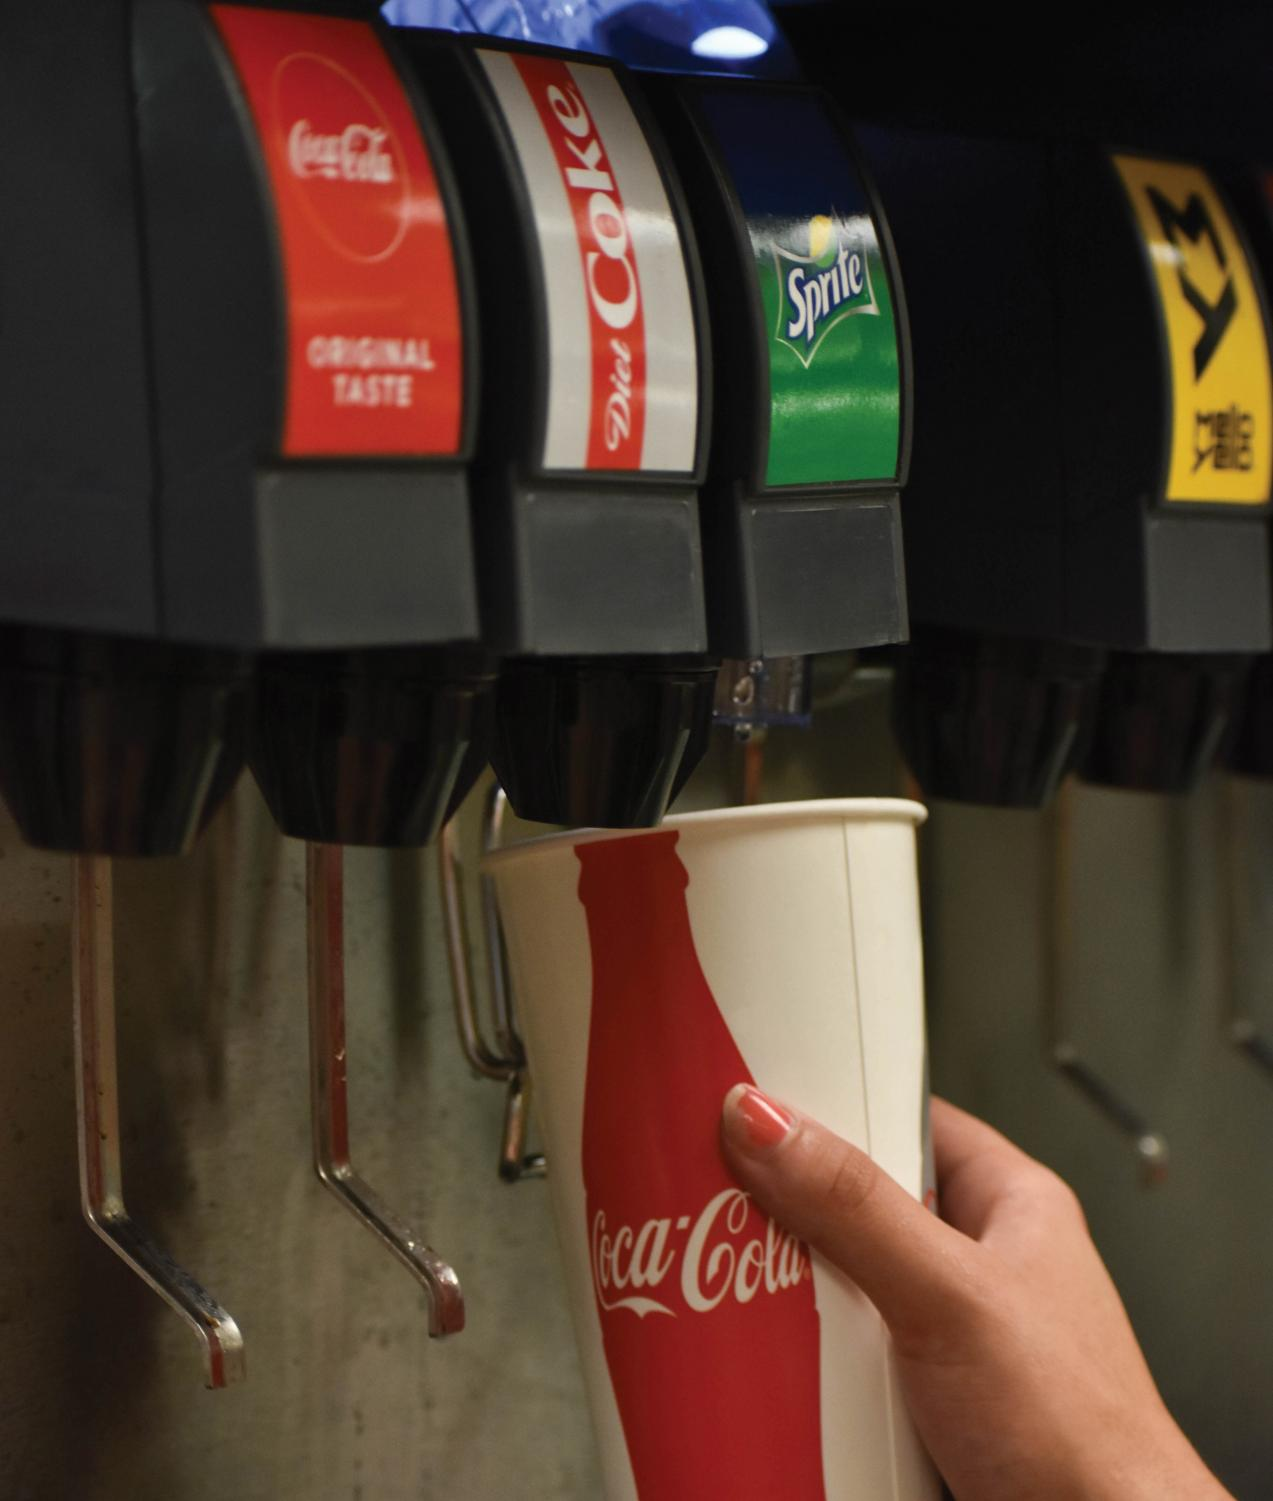 Over the summer, UNI switched from serving Pepsi products on campus to Coca Cola products.